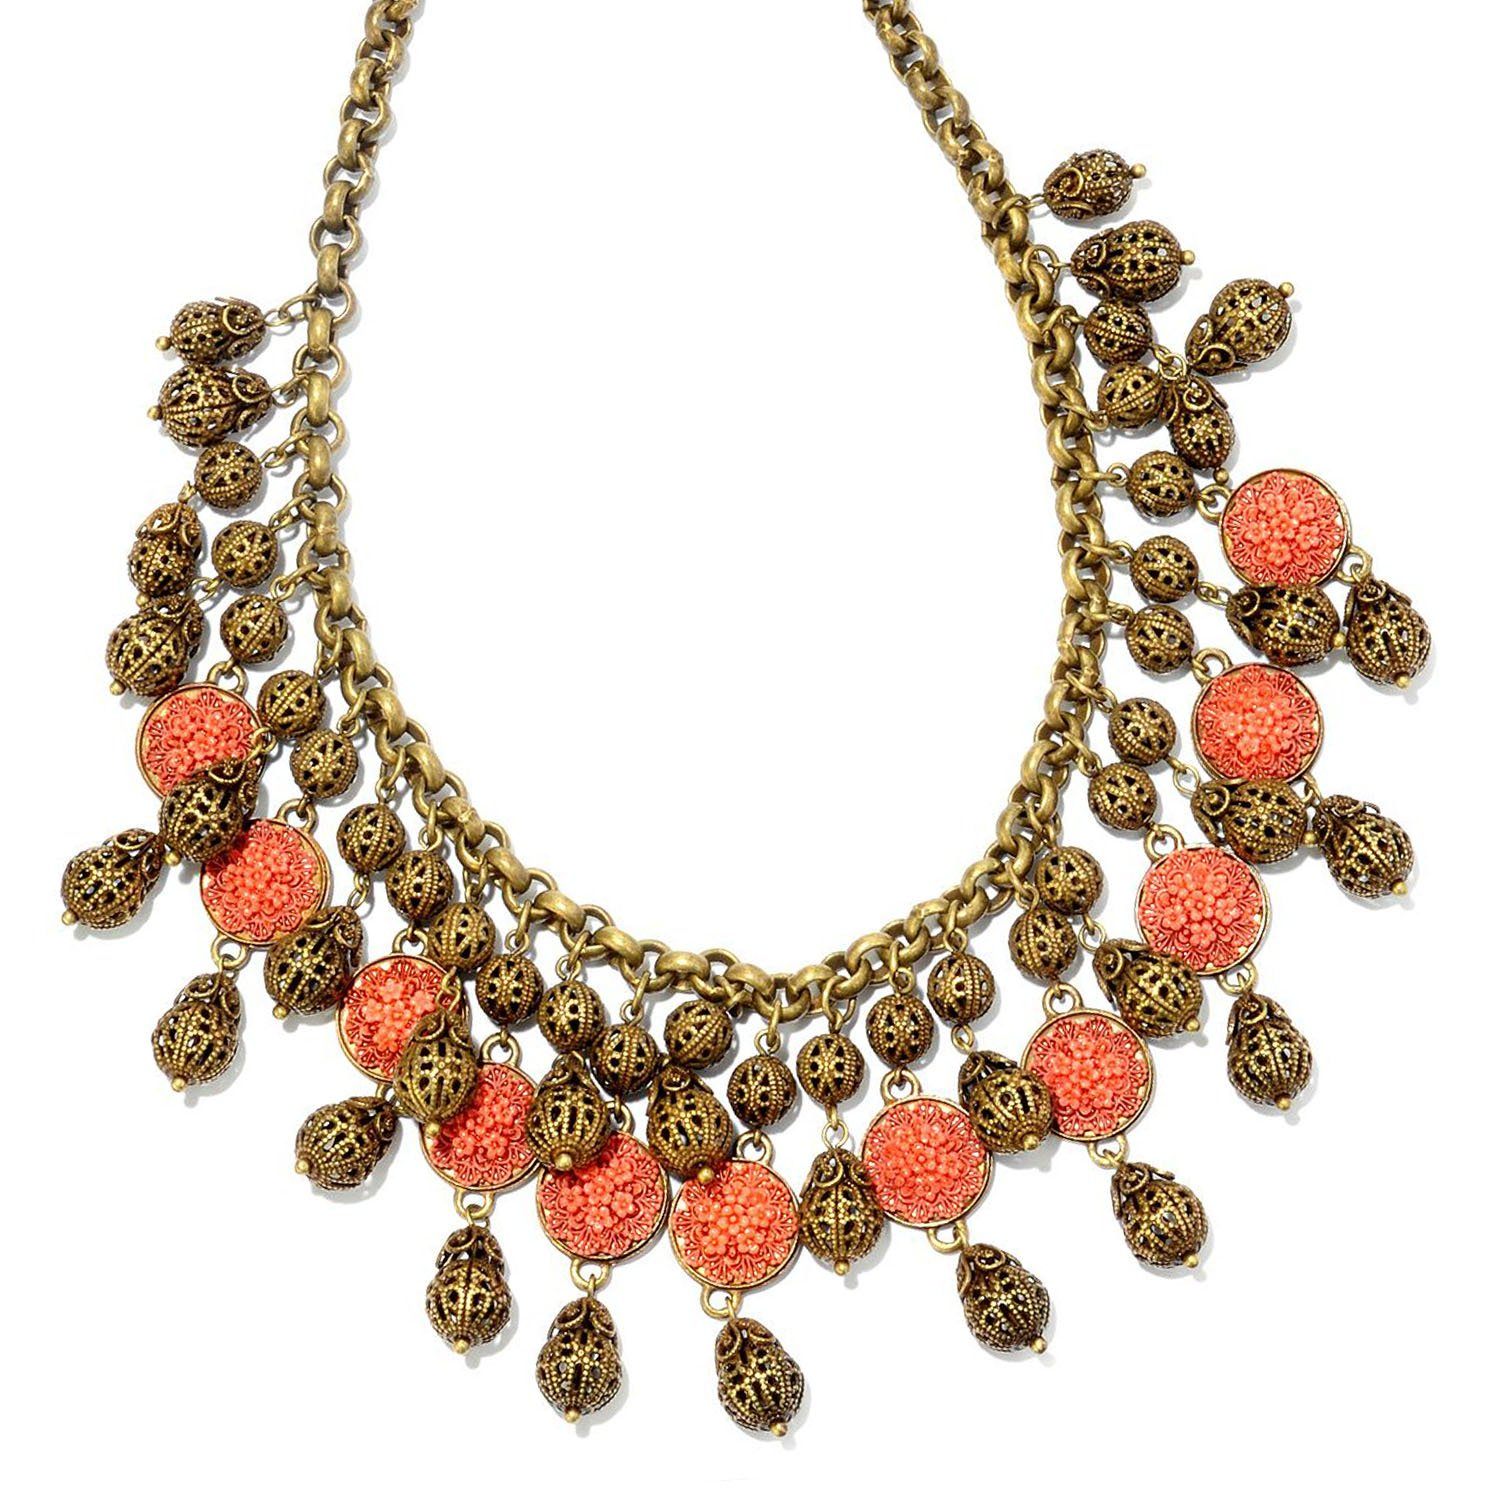 New 1940s Costume Jewelry: Necklaces, Earrings, Pins 1940s Coral & Filigree Collar Necklace $115.00 AT vintagedancer.com